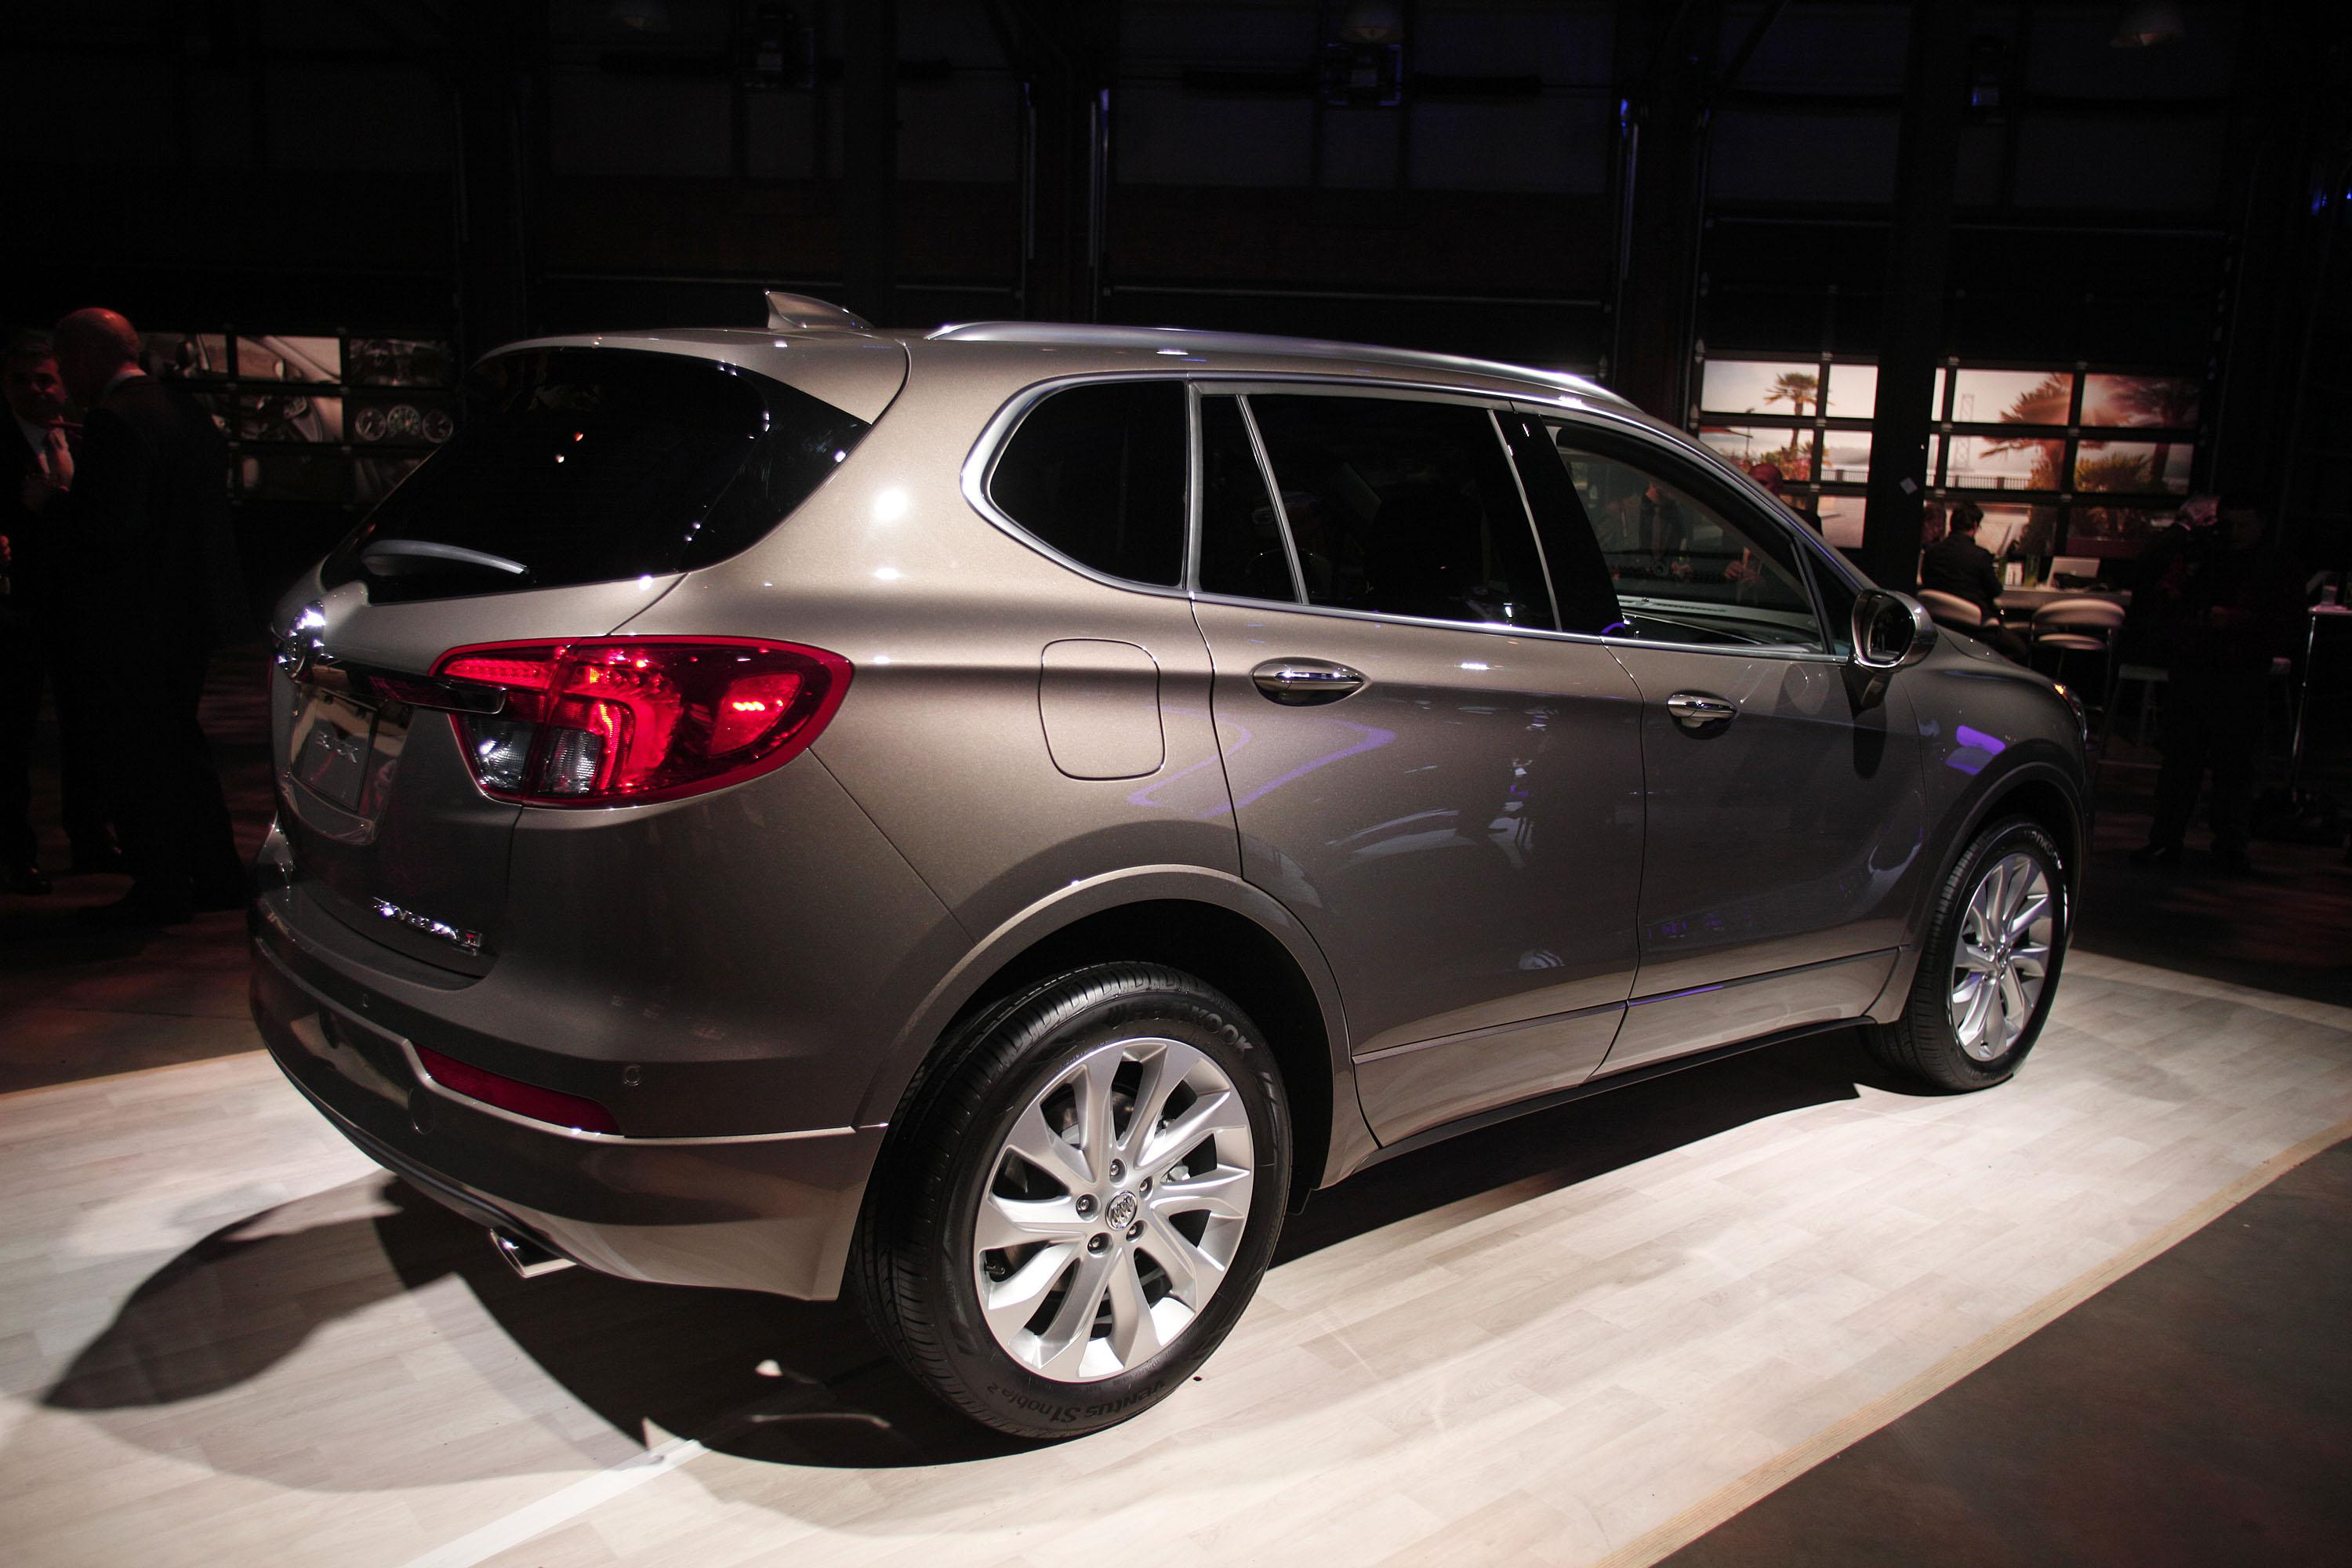 DETROIT, MI - JANUARY 10: The 2016 Buick Envision crossover SUV is shown at a Buick reveal event on the eve of the 2016 North American International Auto Show January 10th, 2016 in Detroit, Michigan. The Envision will be built in China and sold in the United States. The NAIAS runs from January 11th to January 24th and will feature over 750 vehicles and interactive displays.  (Photo by Bill Pugliano/Getty Images)